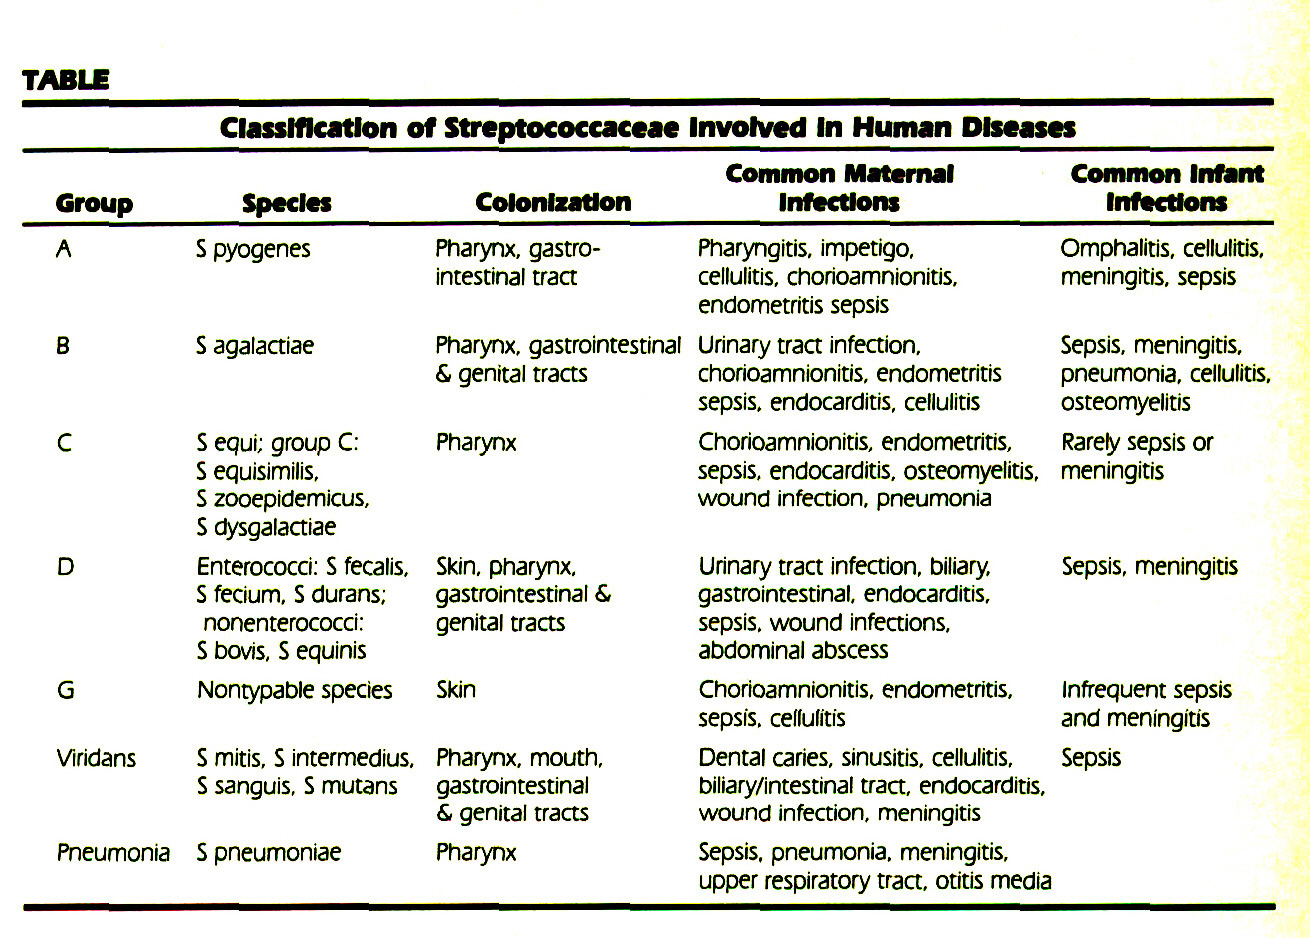 TABLEClassification of Streptococcaccac Involved In Human Diseases